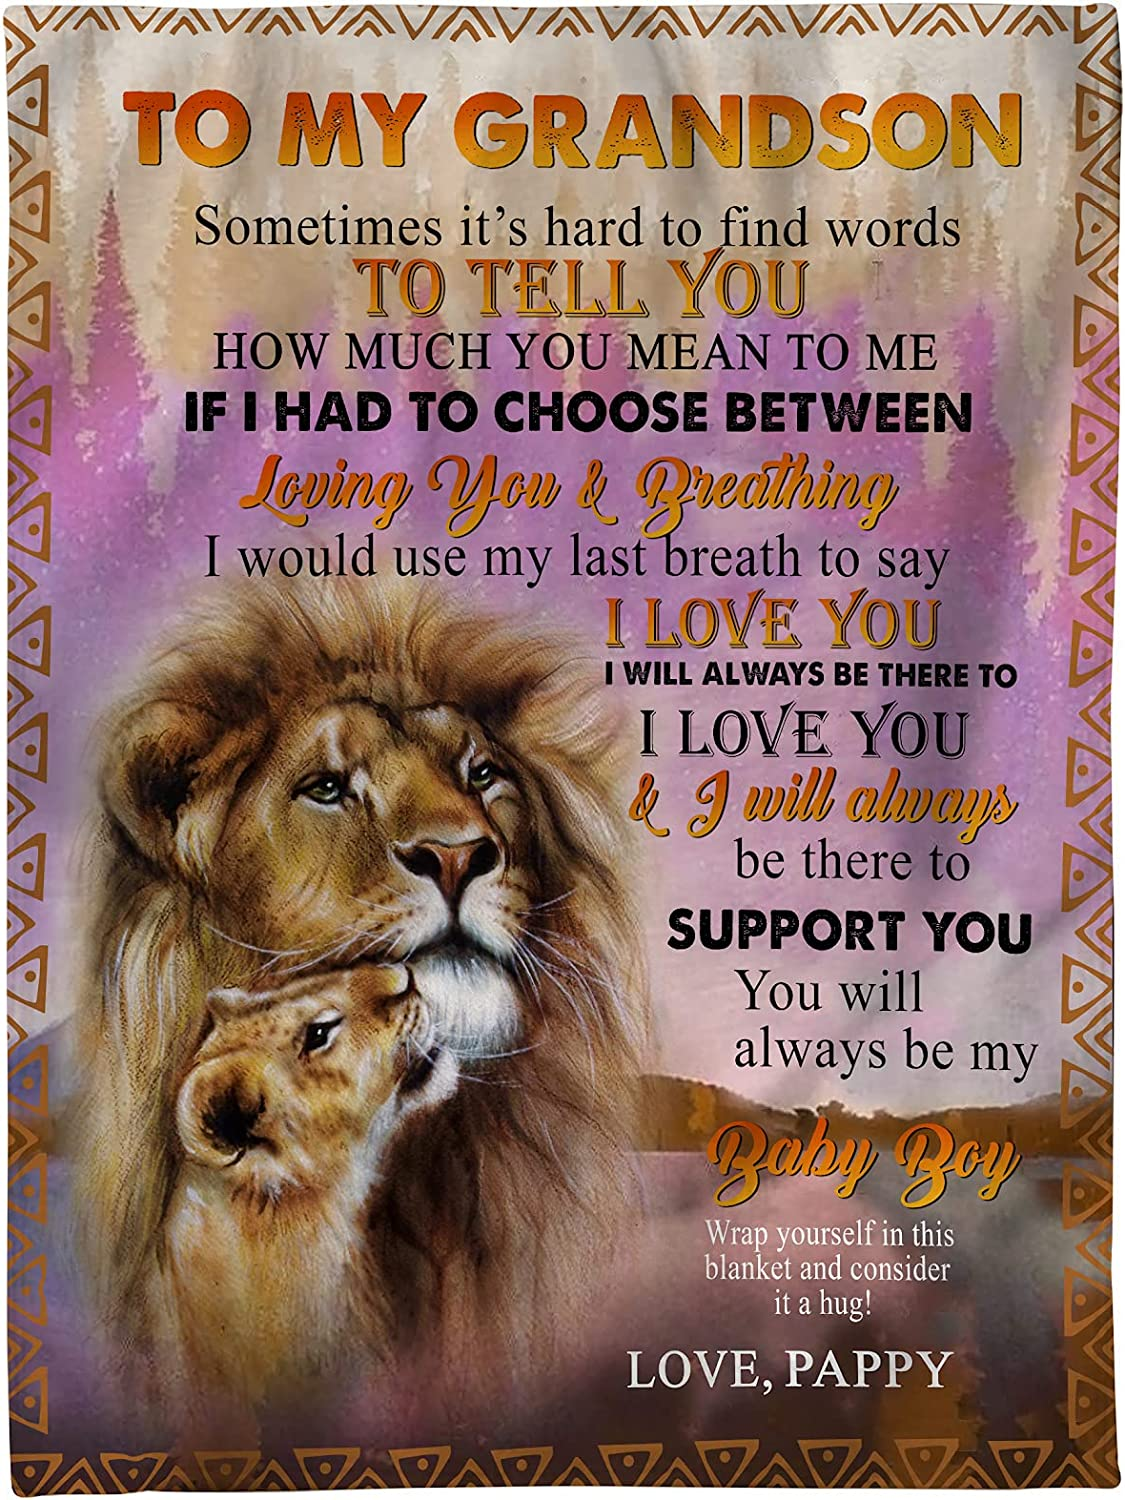 Personalized Blanket-to My Grandson Lion Love Sales Support Ranking integrated 1st place Always You